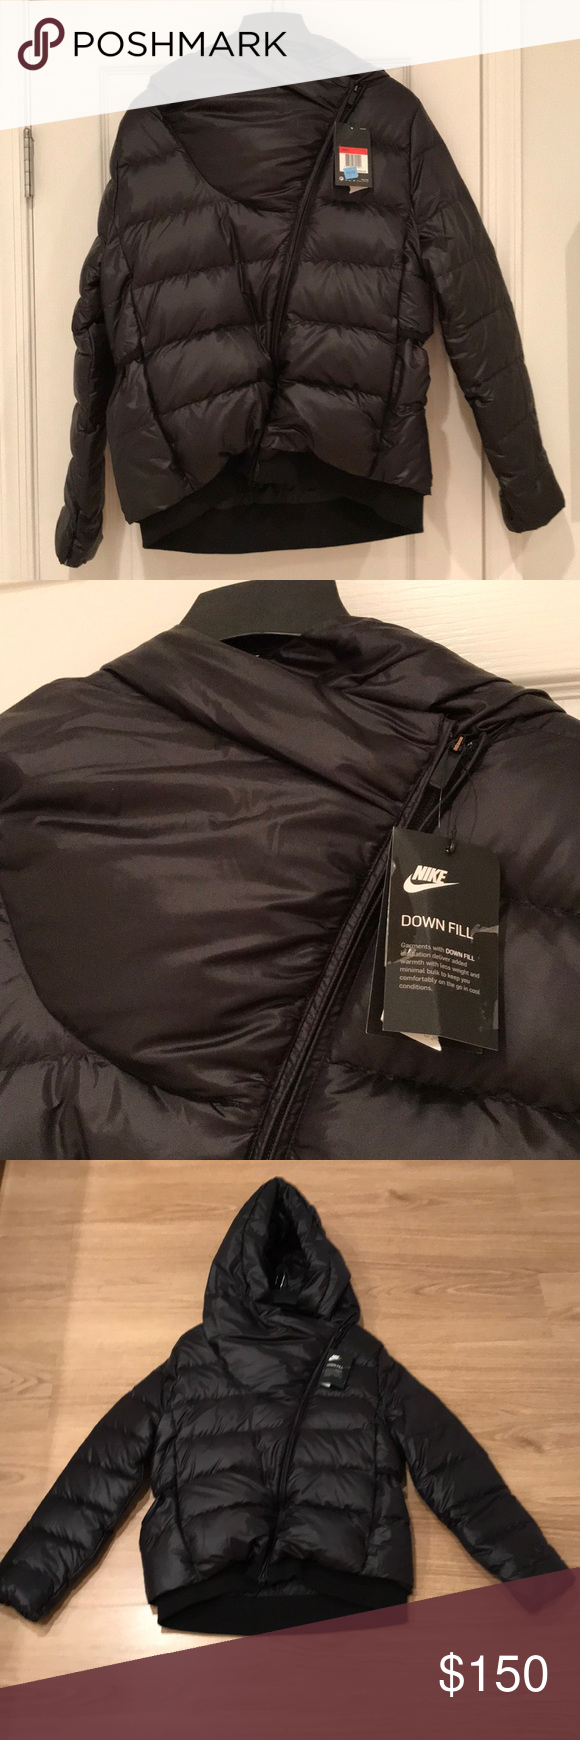 18a1e7467db8 New Women Black winter ❄ 🧥 jacket NIKE size L❄ New Women jacket 🧥 NIKE  size L winter❄ 🧥🎈NO TRADE🎈 Nike Jackets   Coats Puffers